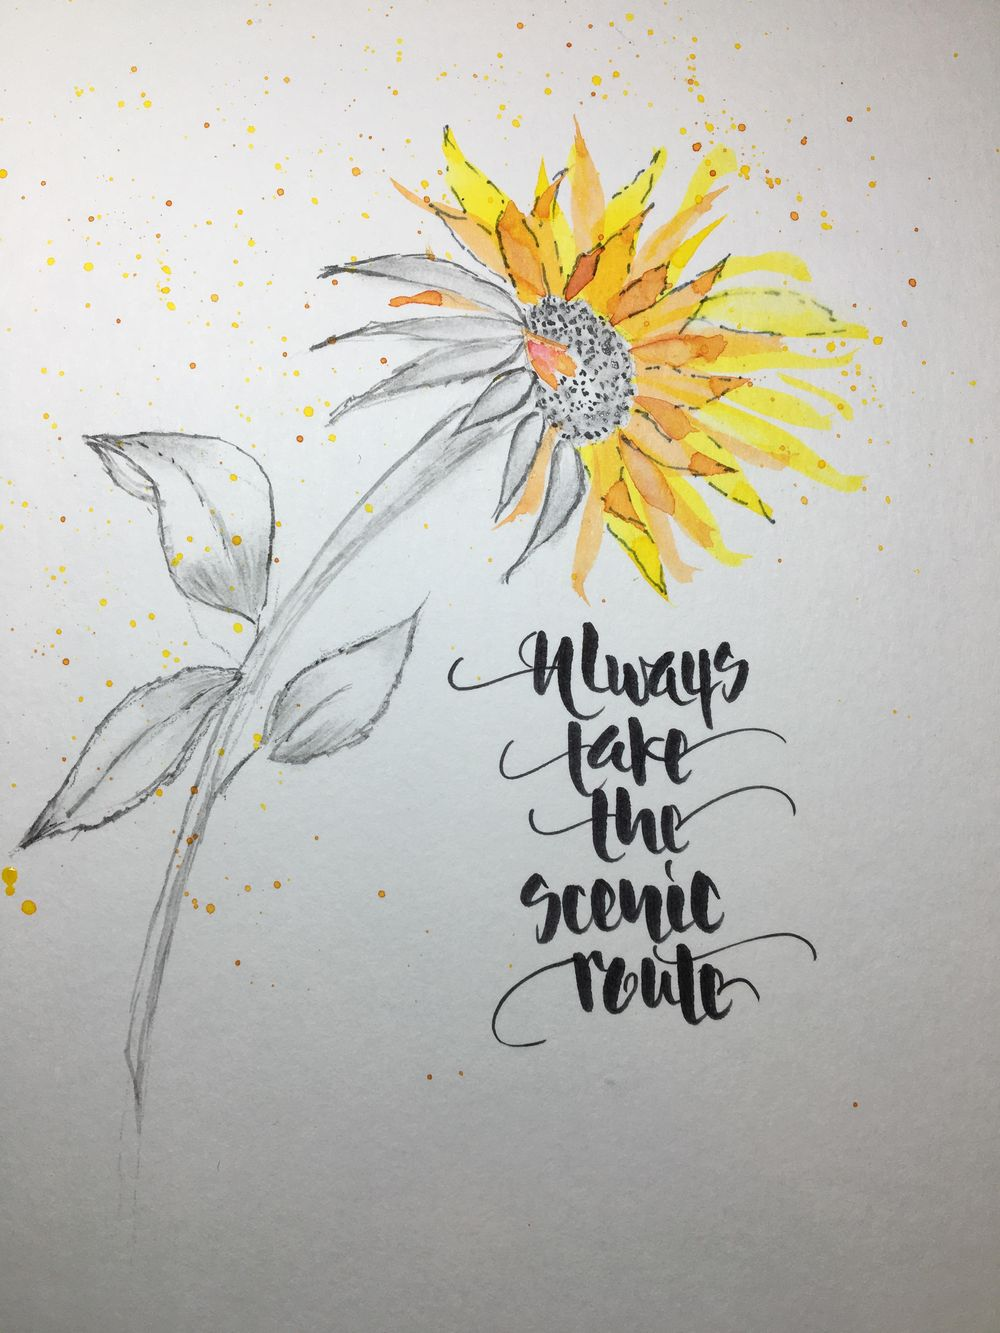 Daisies & Thistles - first intentions - image 3 - student project